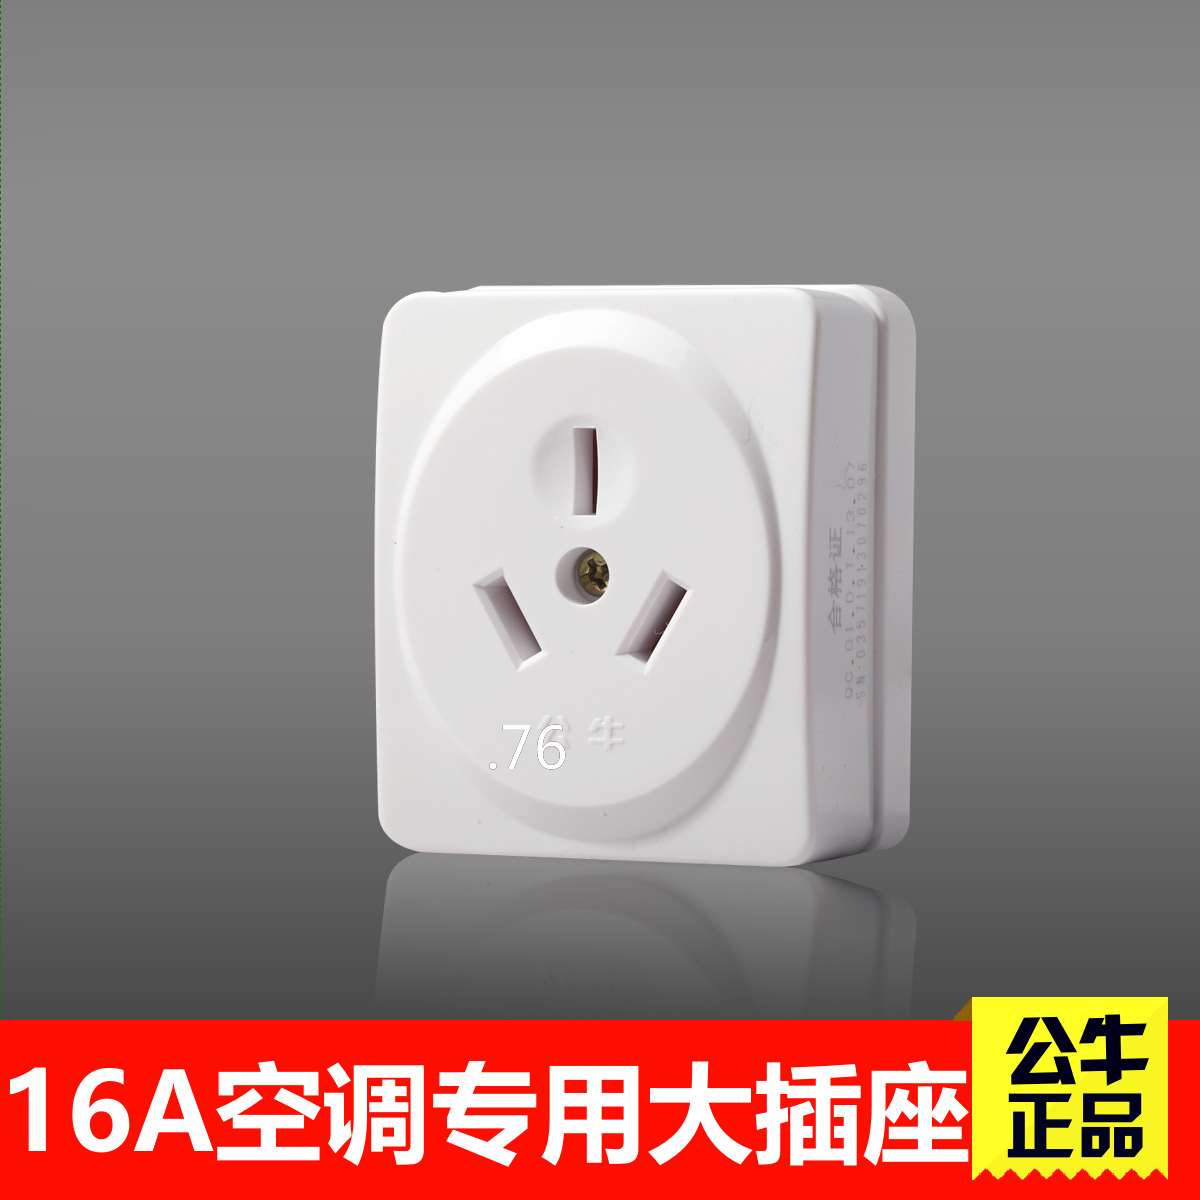 High-power big-foot socket Z3 for 16A flat three-hole air-conditioning water heater installed on the wall of genuine bull socket